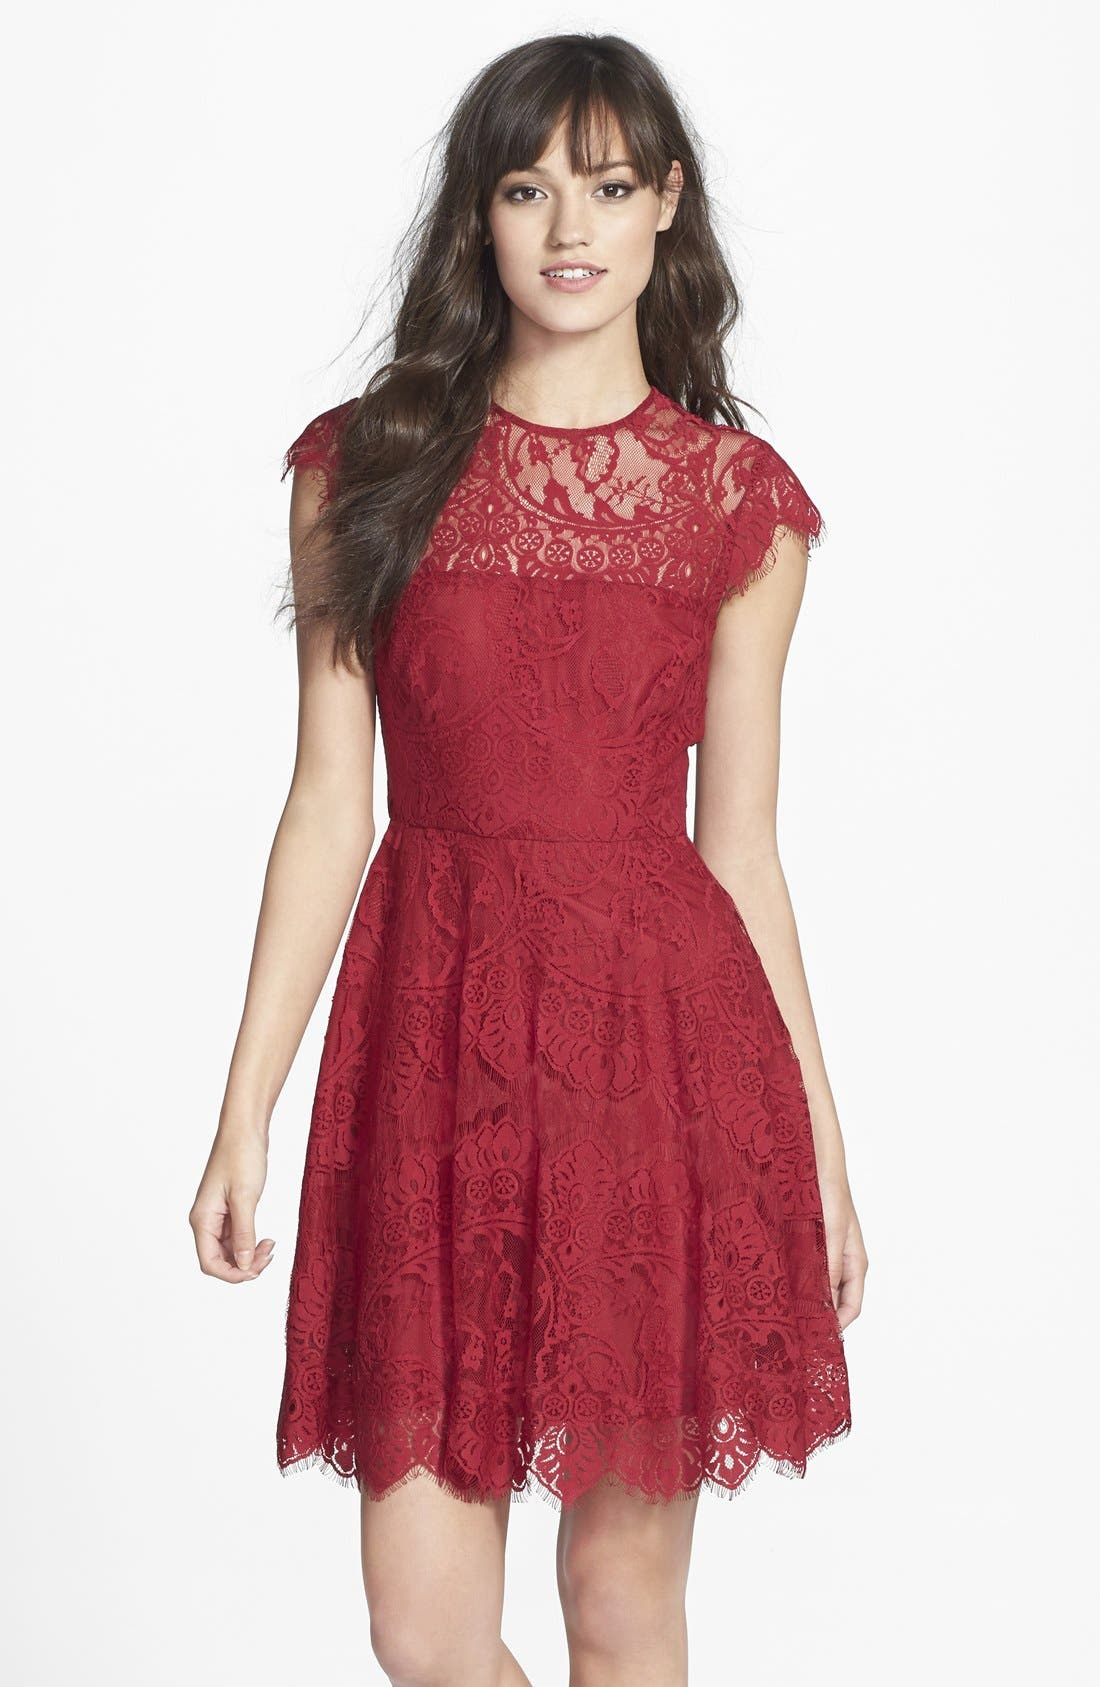 Alternate Image 1 Selected - BB Dakota 'Rhianna' Illusion Yoke Lace Fit & Flare Dress (Nordstrom Exclusive)